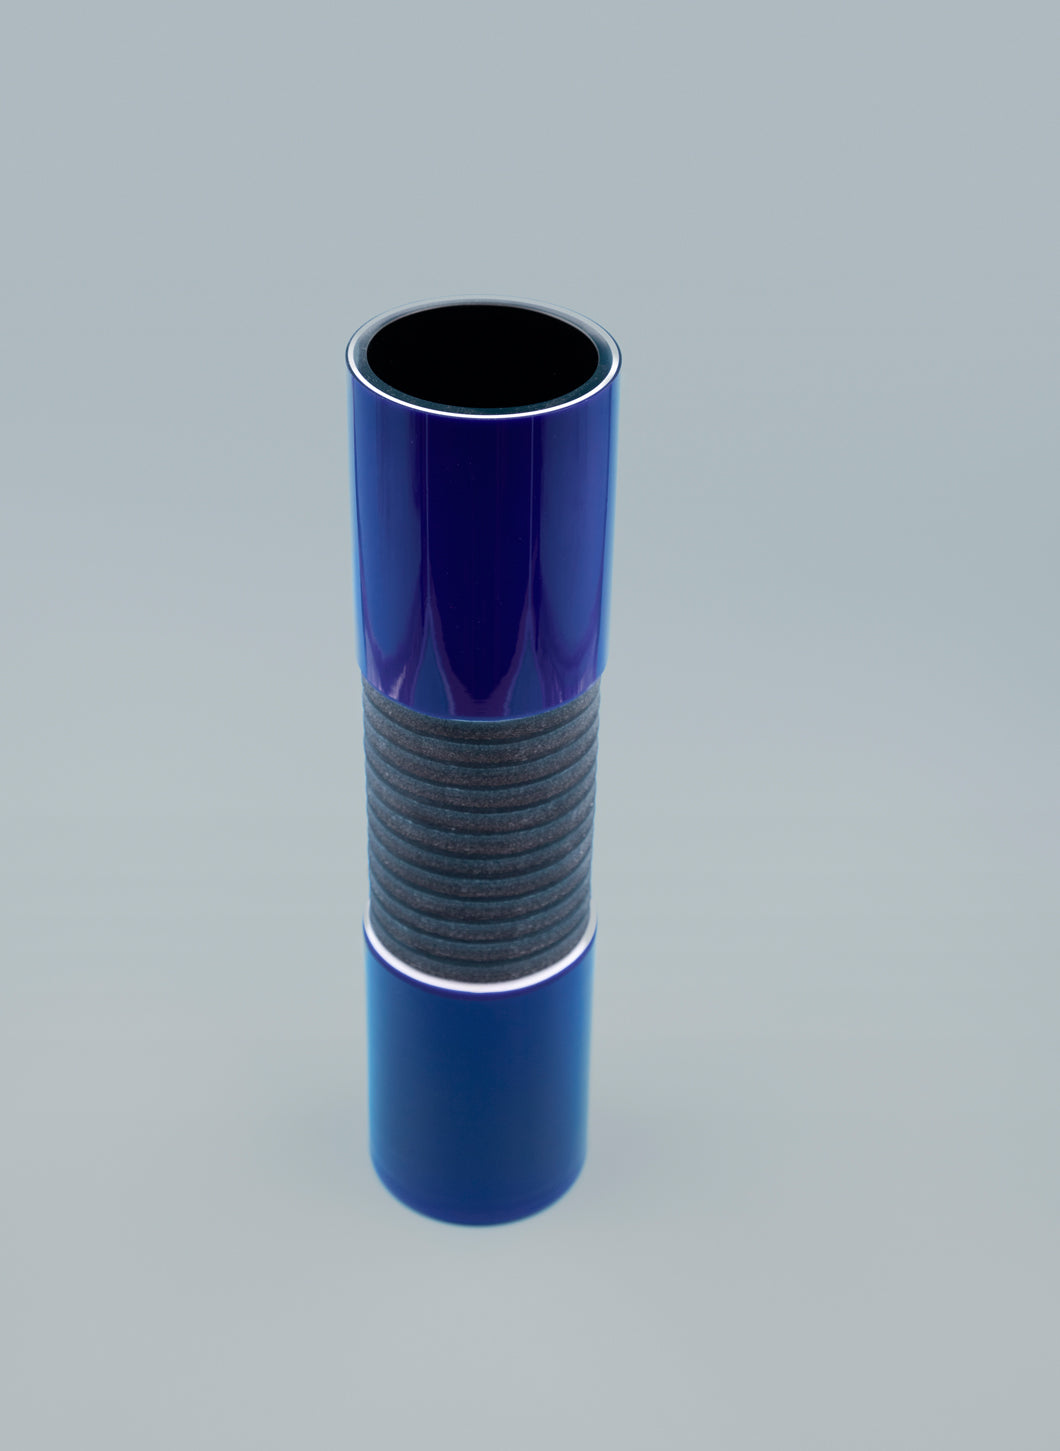 Cylindrical Blue Glass Vase